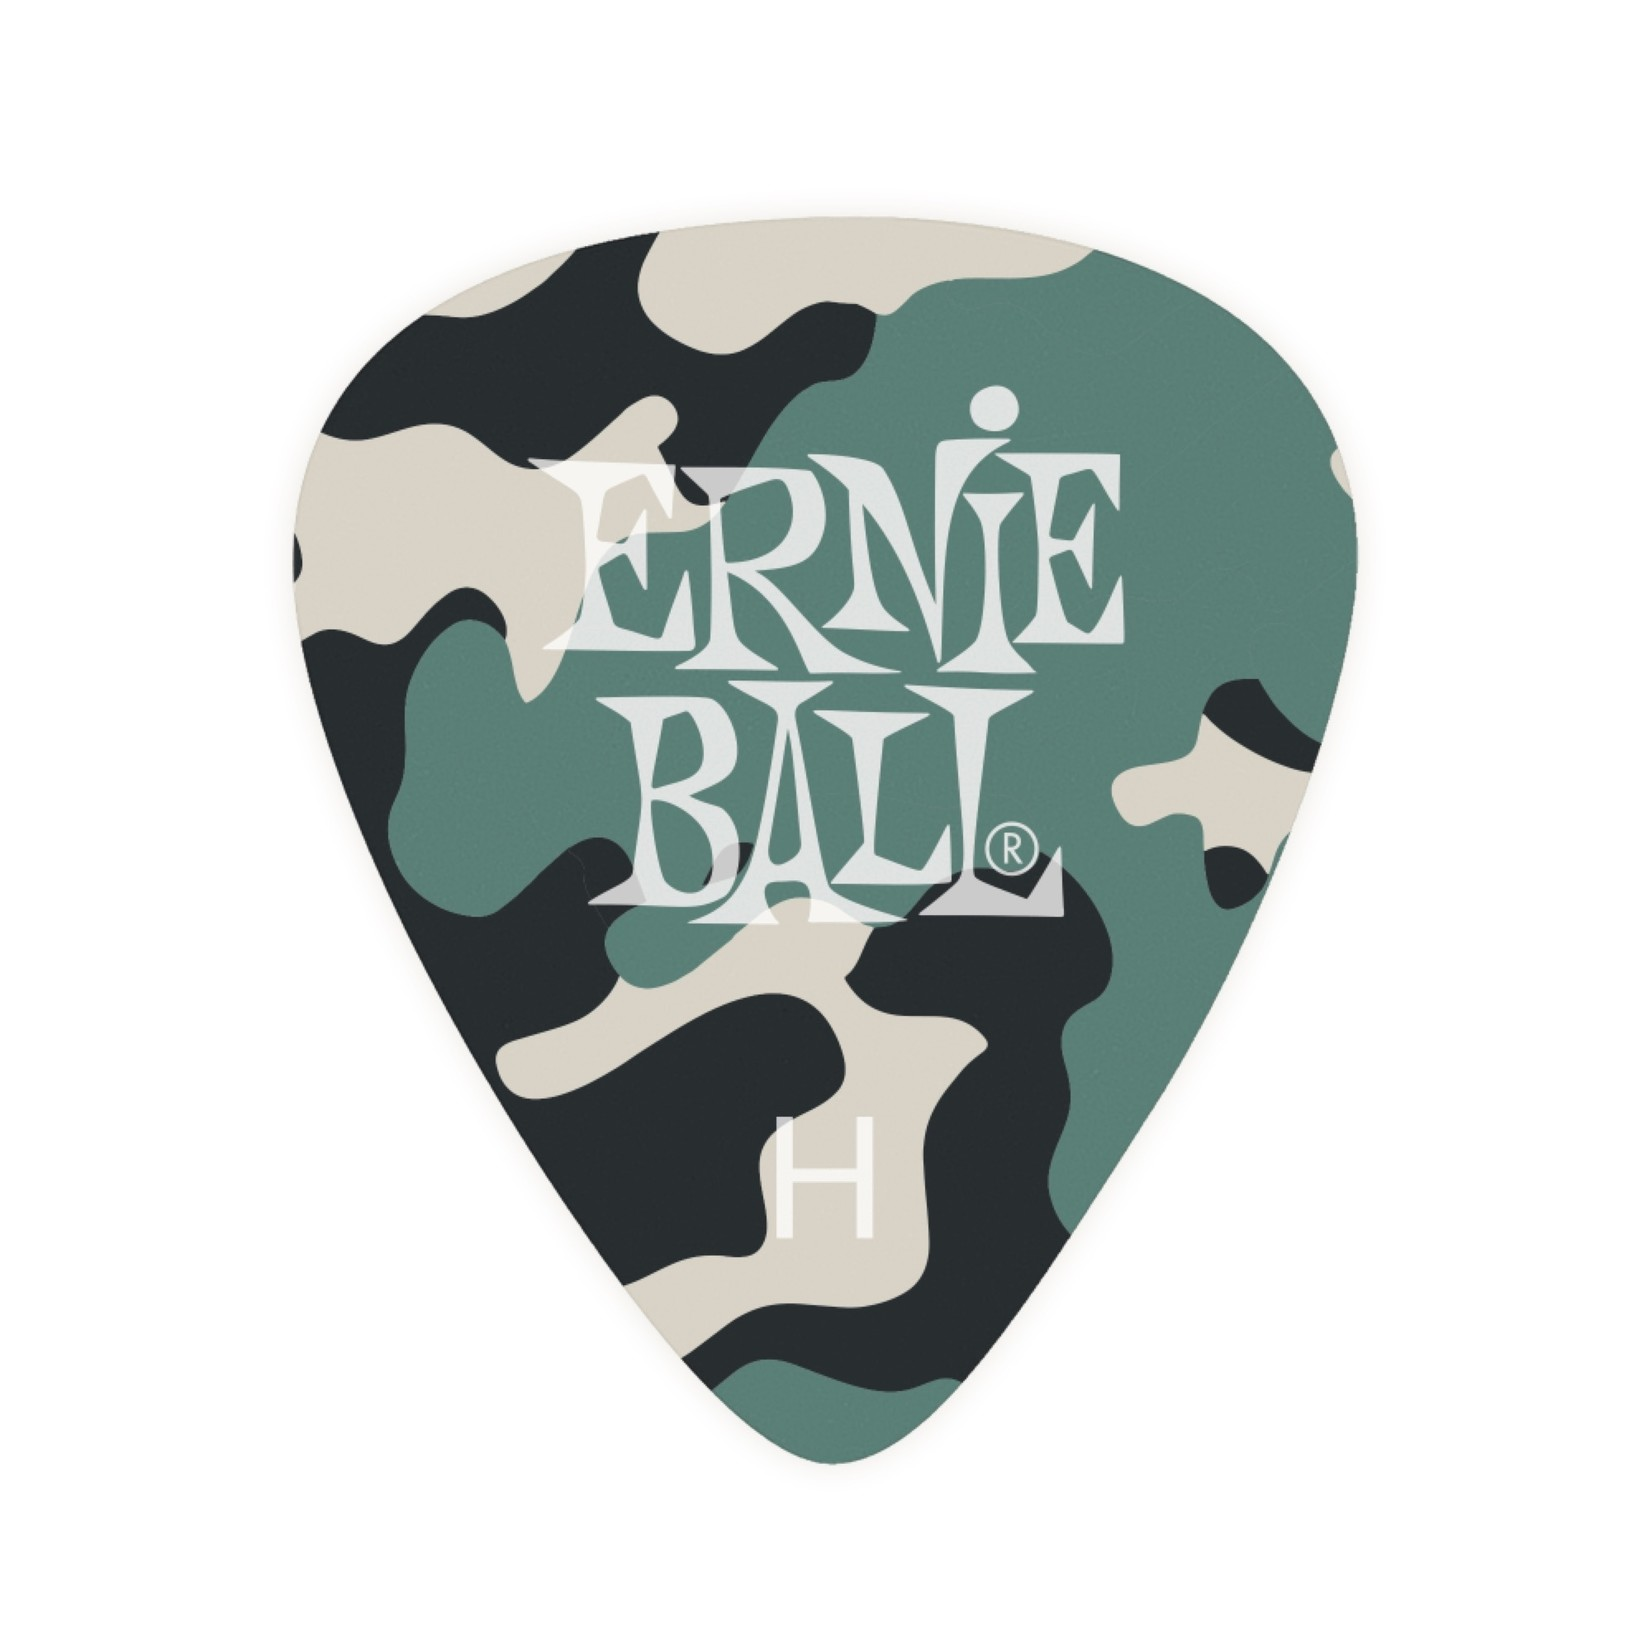 Ernie Ball Ernie Ball Camouflage Cellulose Picks Heavy 12-pack